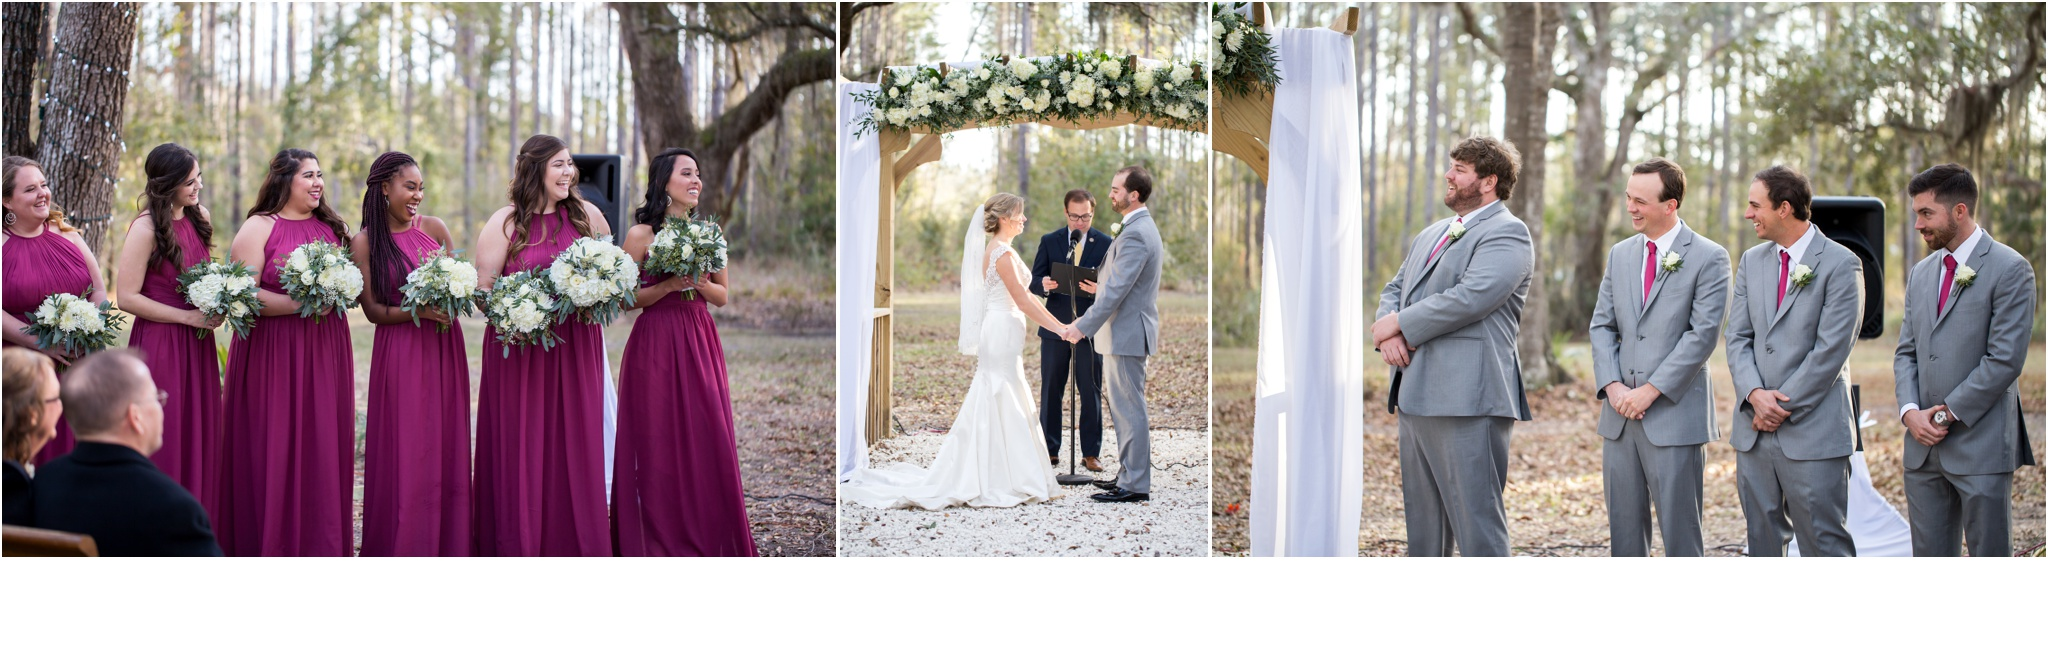 Rainey_Gregg_Photography_St._Simons_Island_Georgia_California_Wedding_Portrait_Photography_0529.jpg